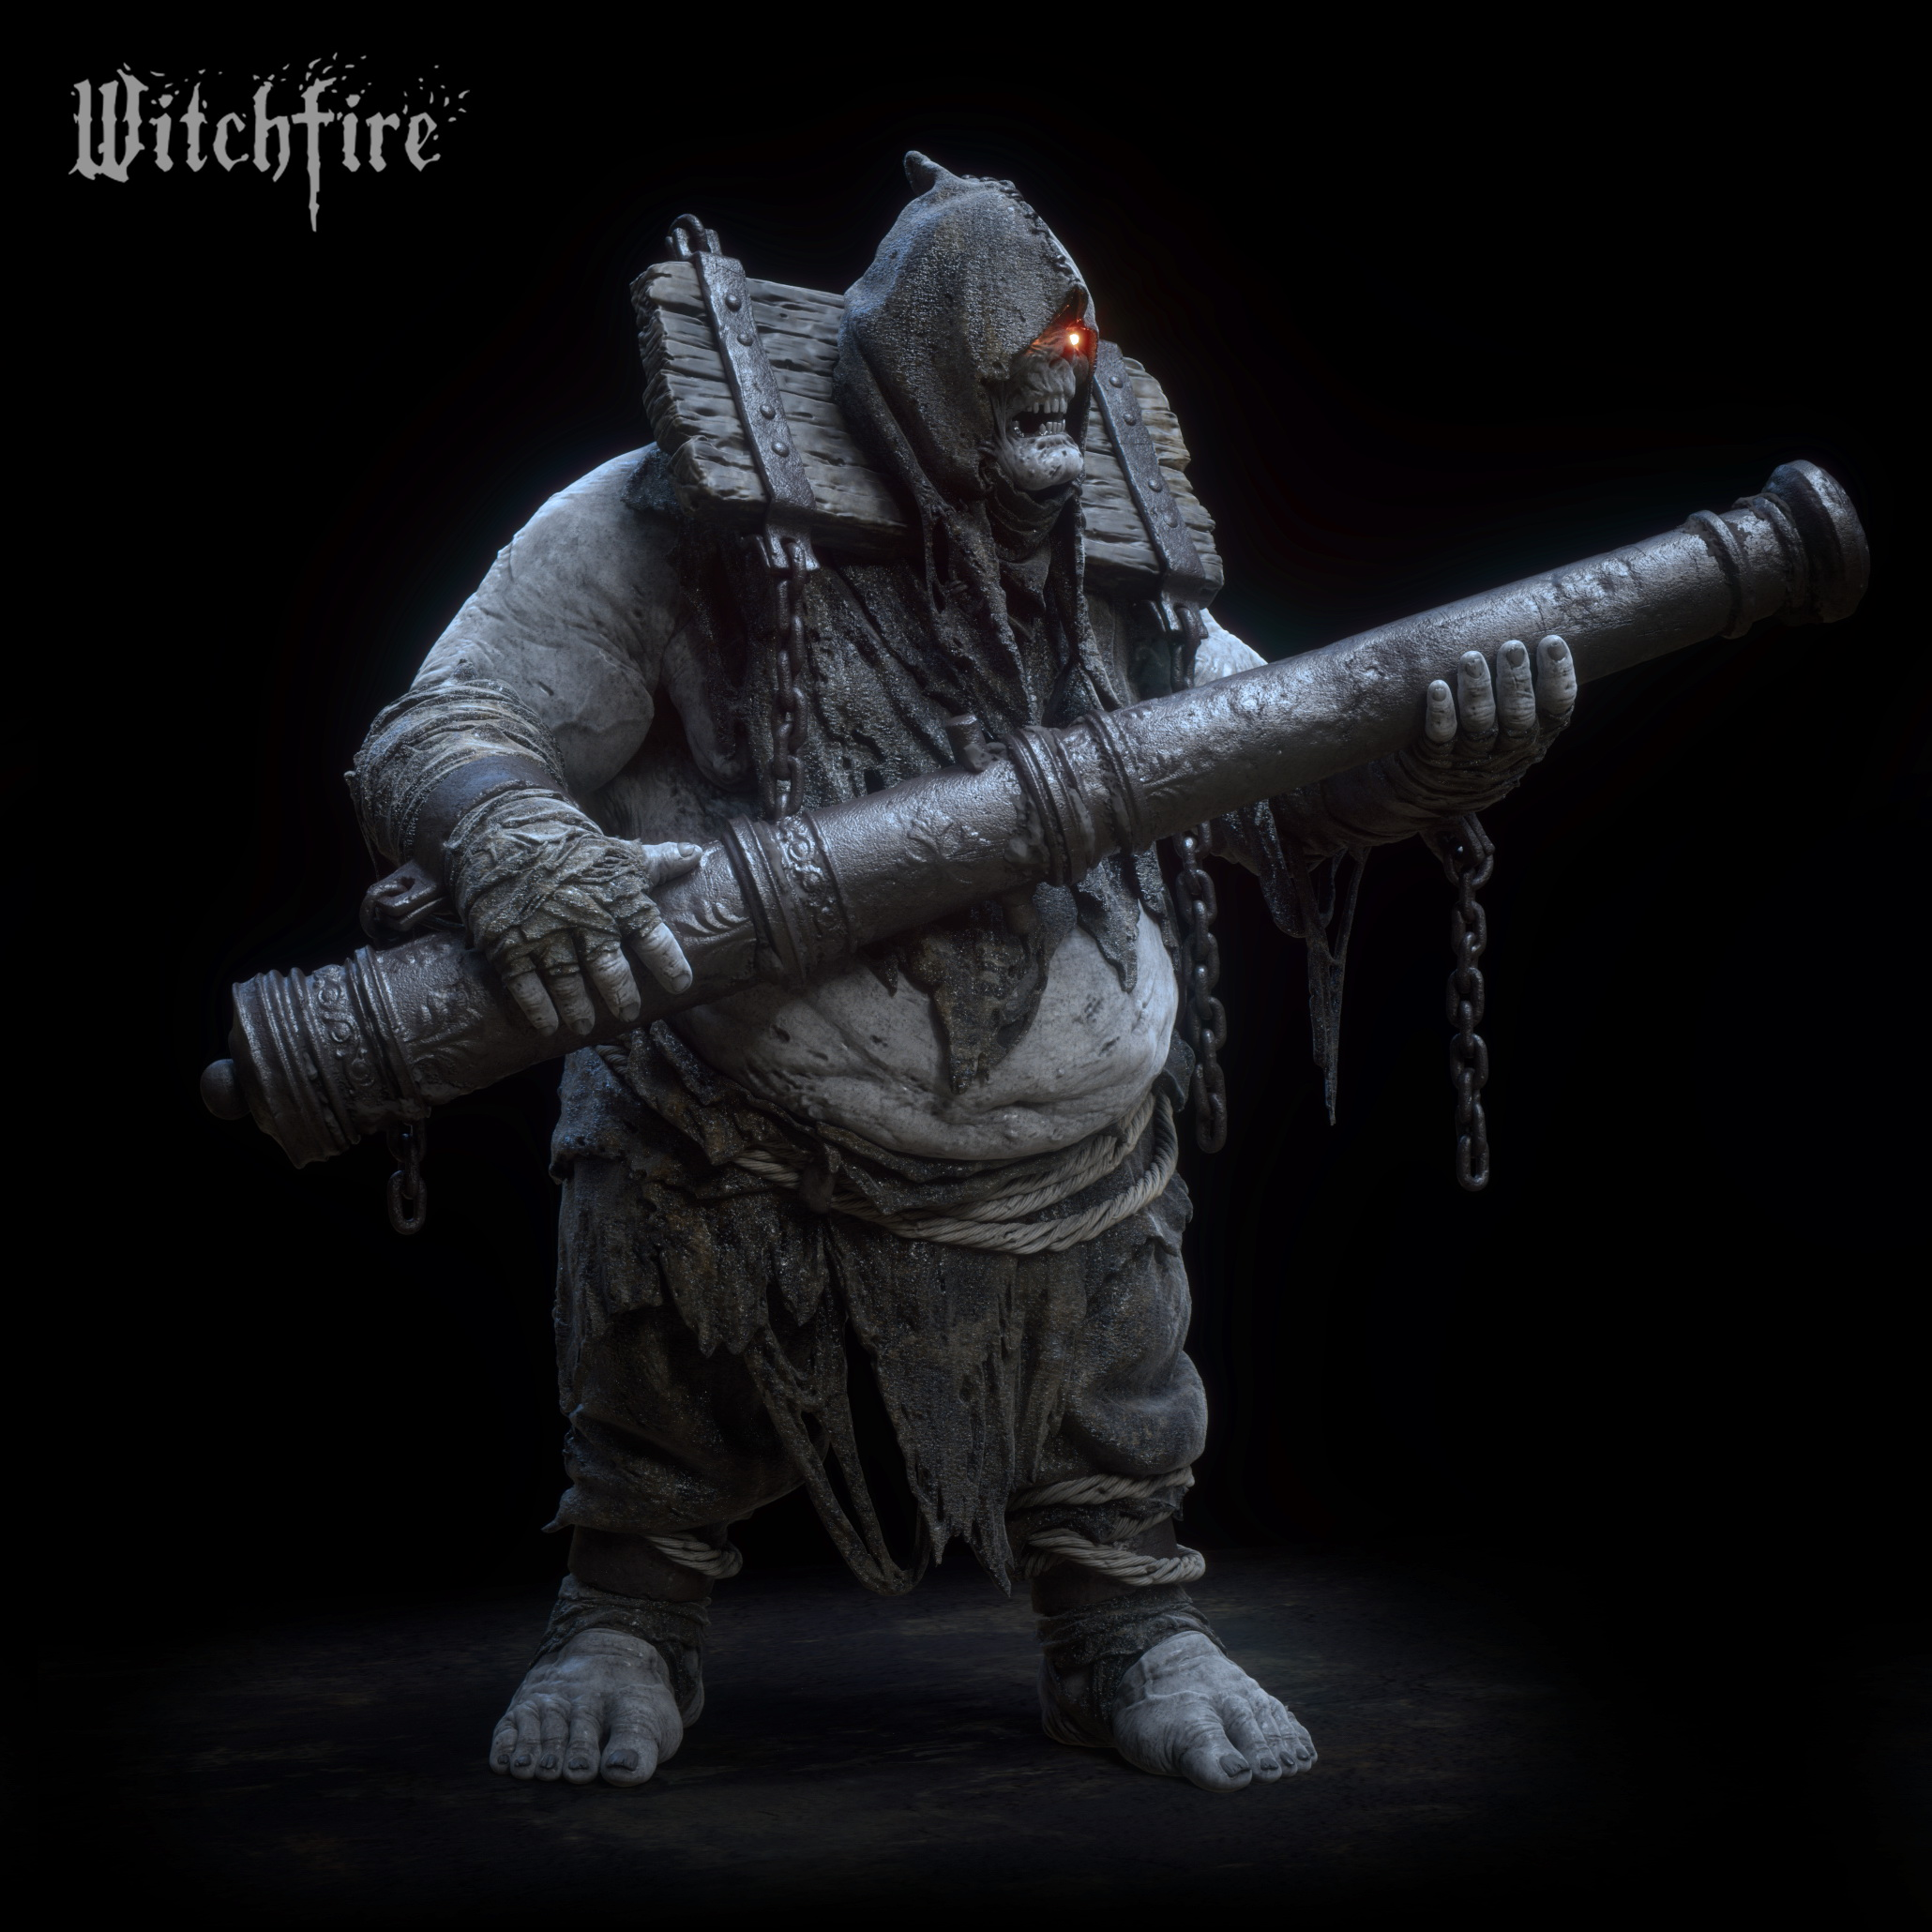 witchfire_ogr_render_06_single_B.jpg